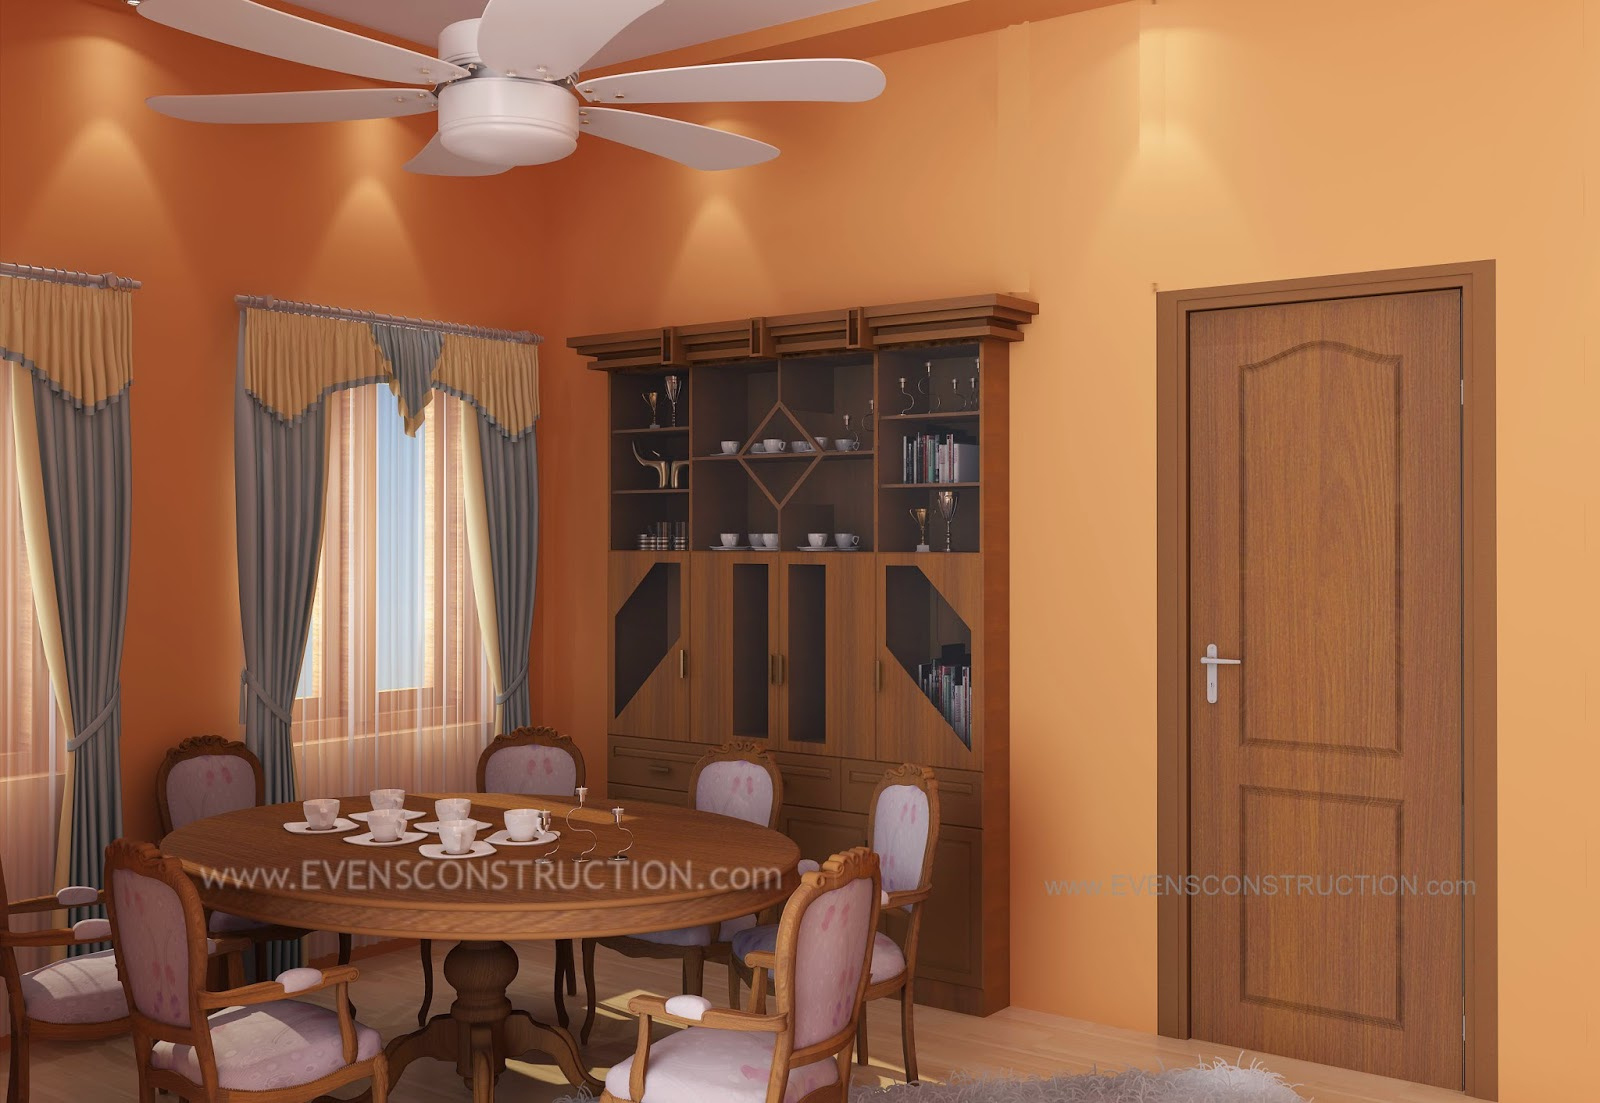 Evens Construction Pvt Ltd Kerala Dining Room Design